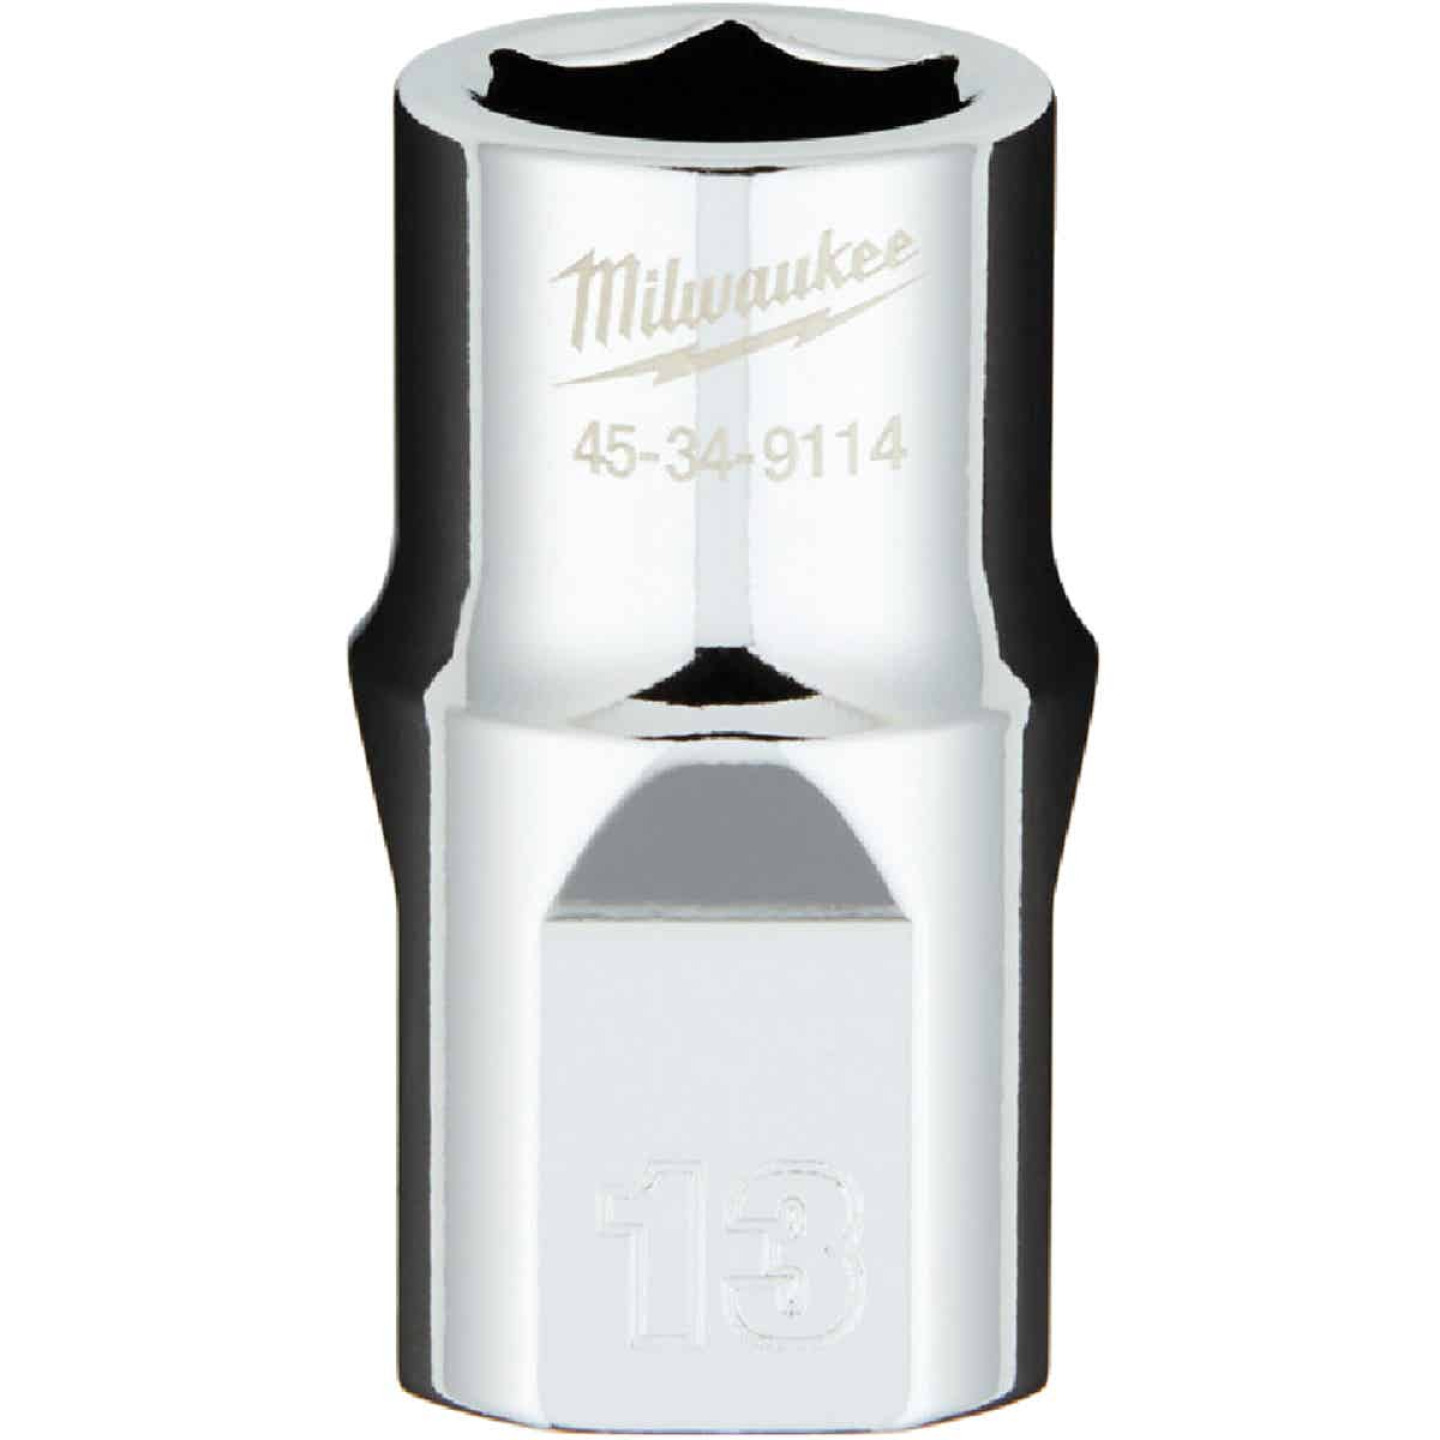 Milwaukee 1/2 In. Drive 13 mm 6-Point Shallow Metric Socket with FOUR FLAT Sides Image 1